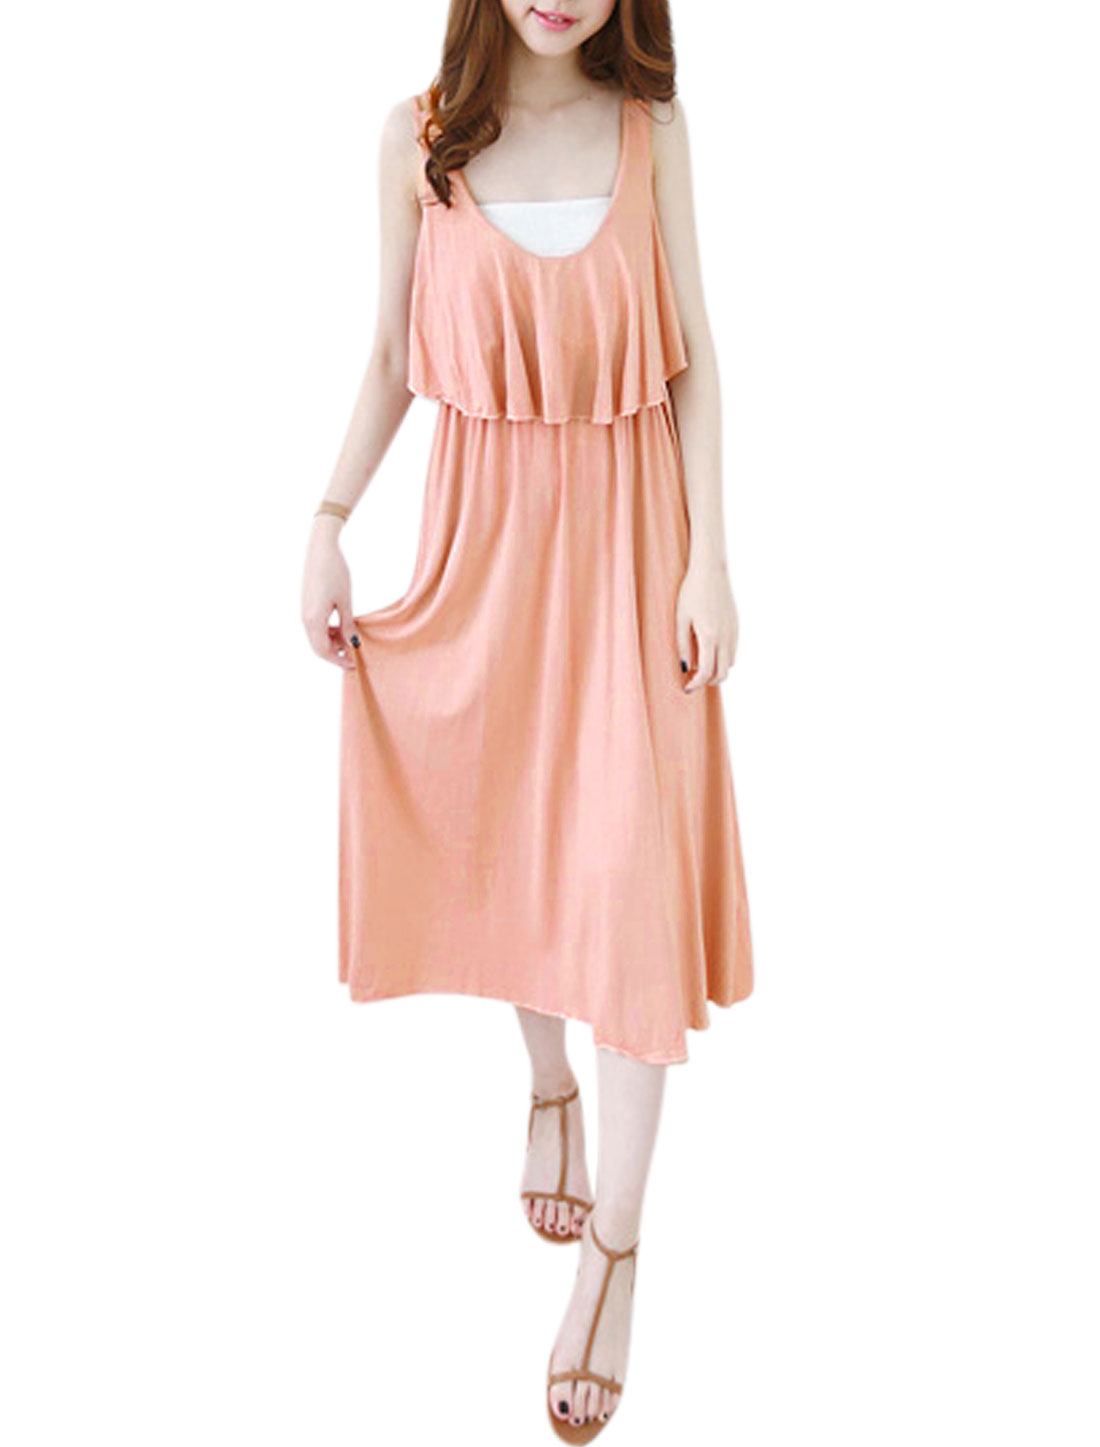 Women Sleeveless Scoop Neck Cape Style Casual Dresses Pale Pink M